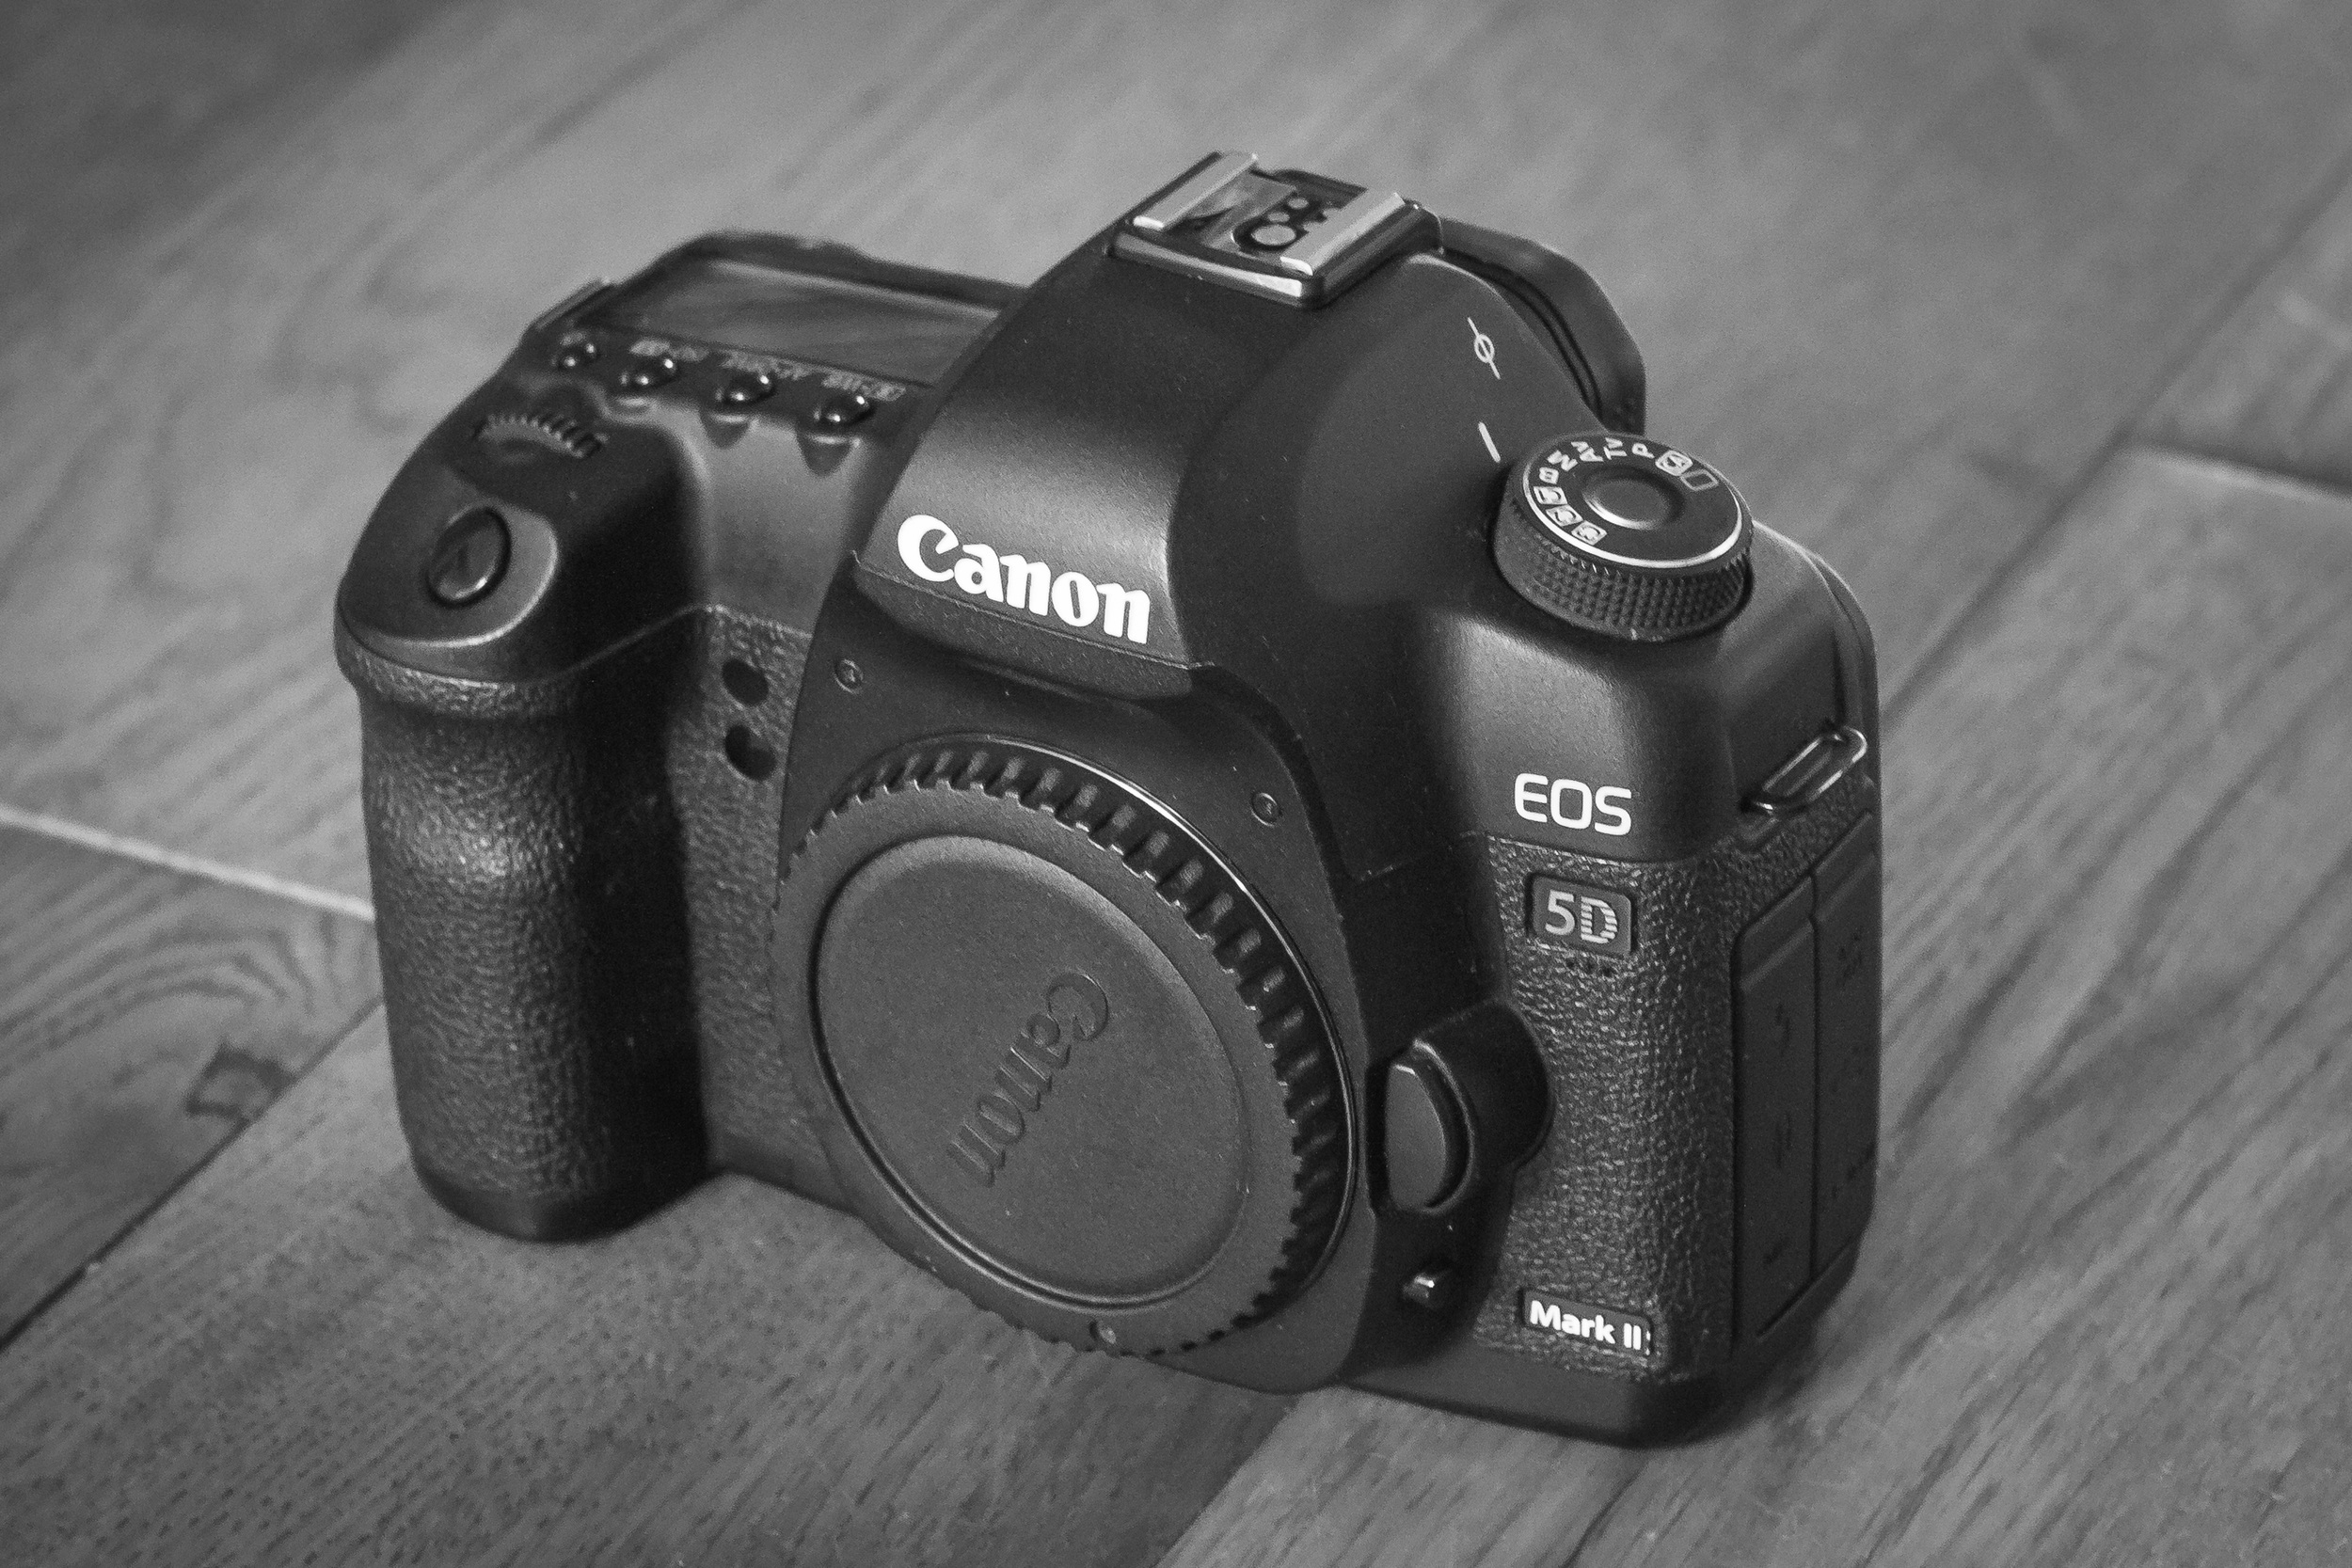 My Canon Eos 5D Mark ii - a little worn on the surface but always works a treat!